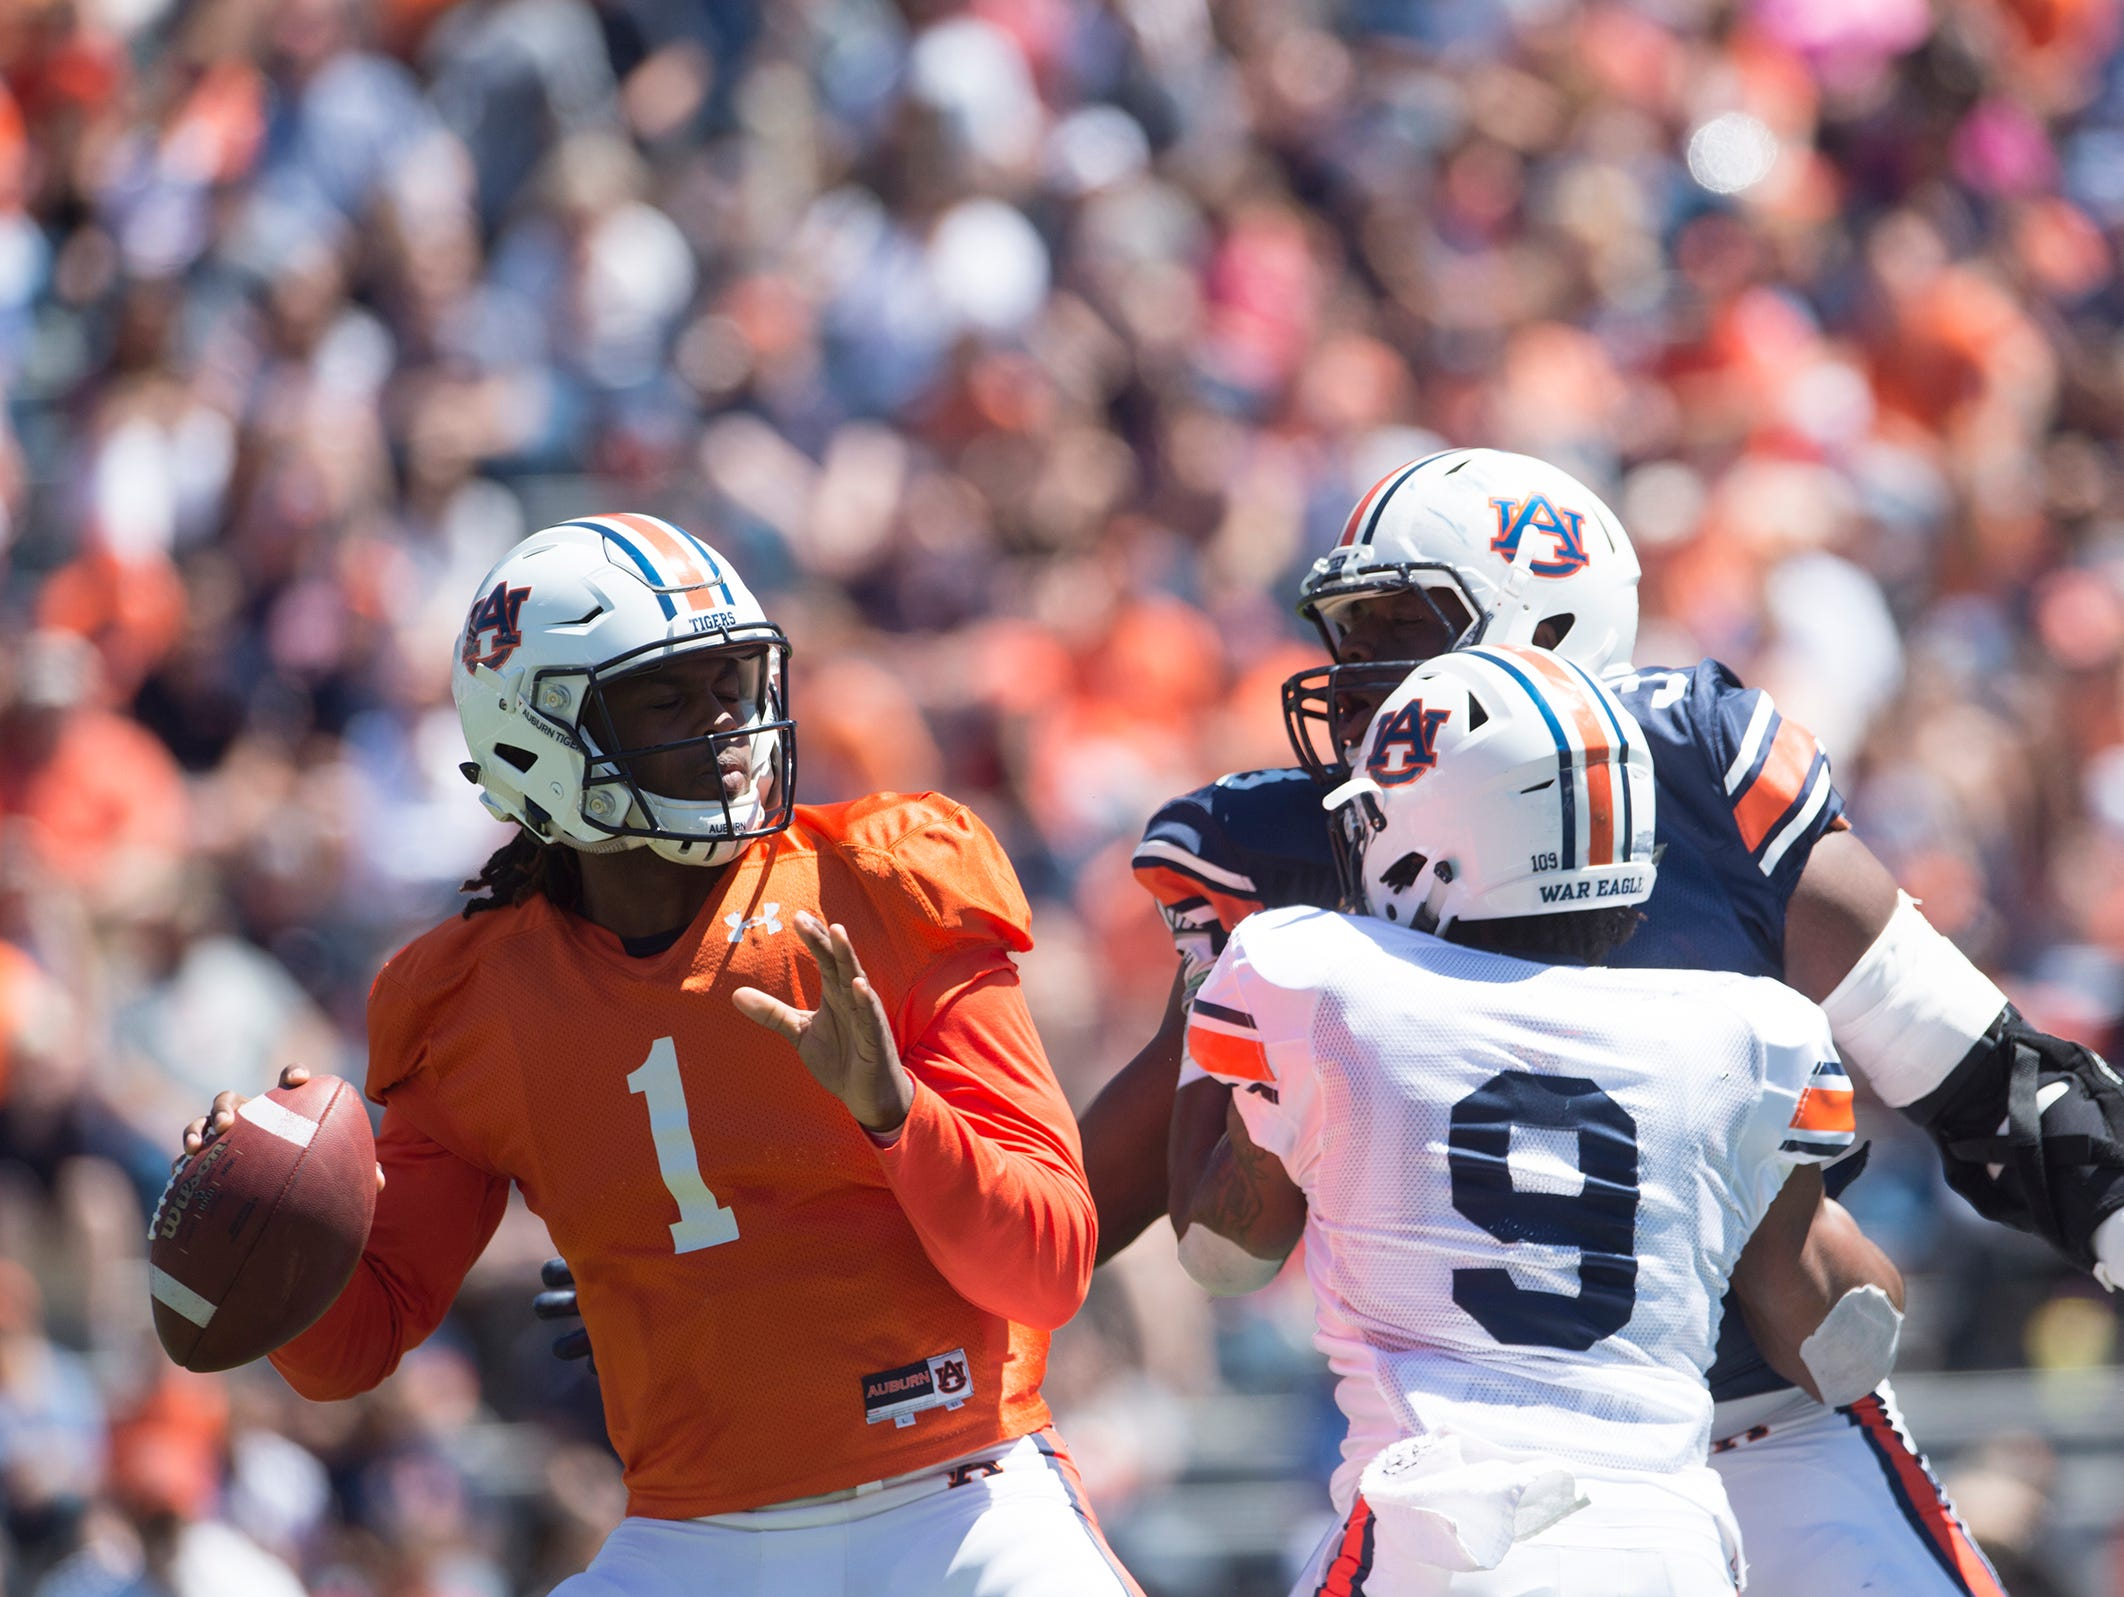 Auburn quarterback Woody Barrett (1) looks to throw a pass as Auburn defensive lineman Marlon Davidson (3) looks to sack him during Auburn's A-Day on Saturday, April 8, 2017, at Jordan Hare Stadium in Auburn, Ala.